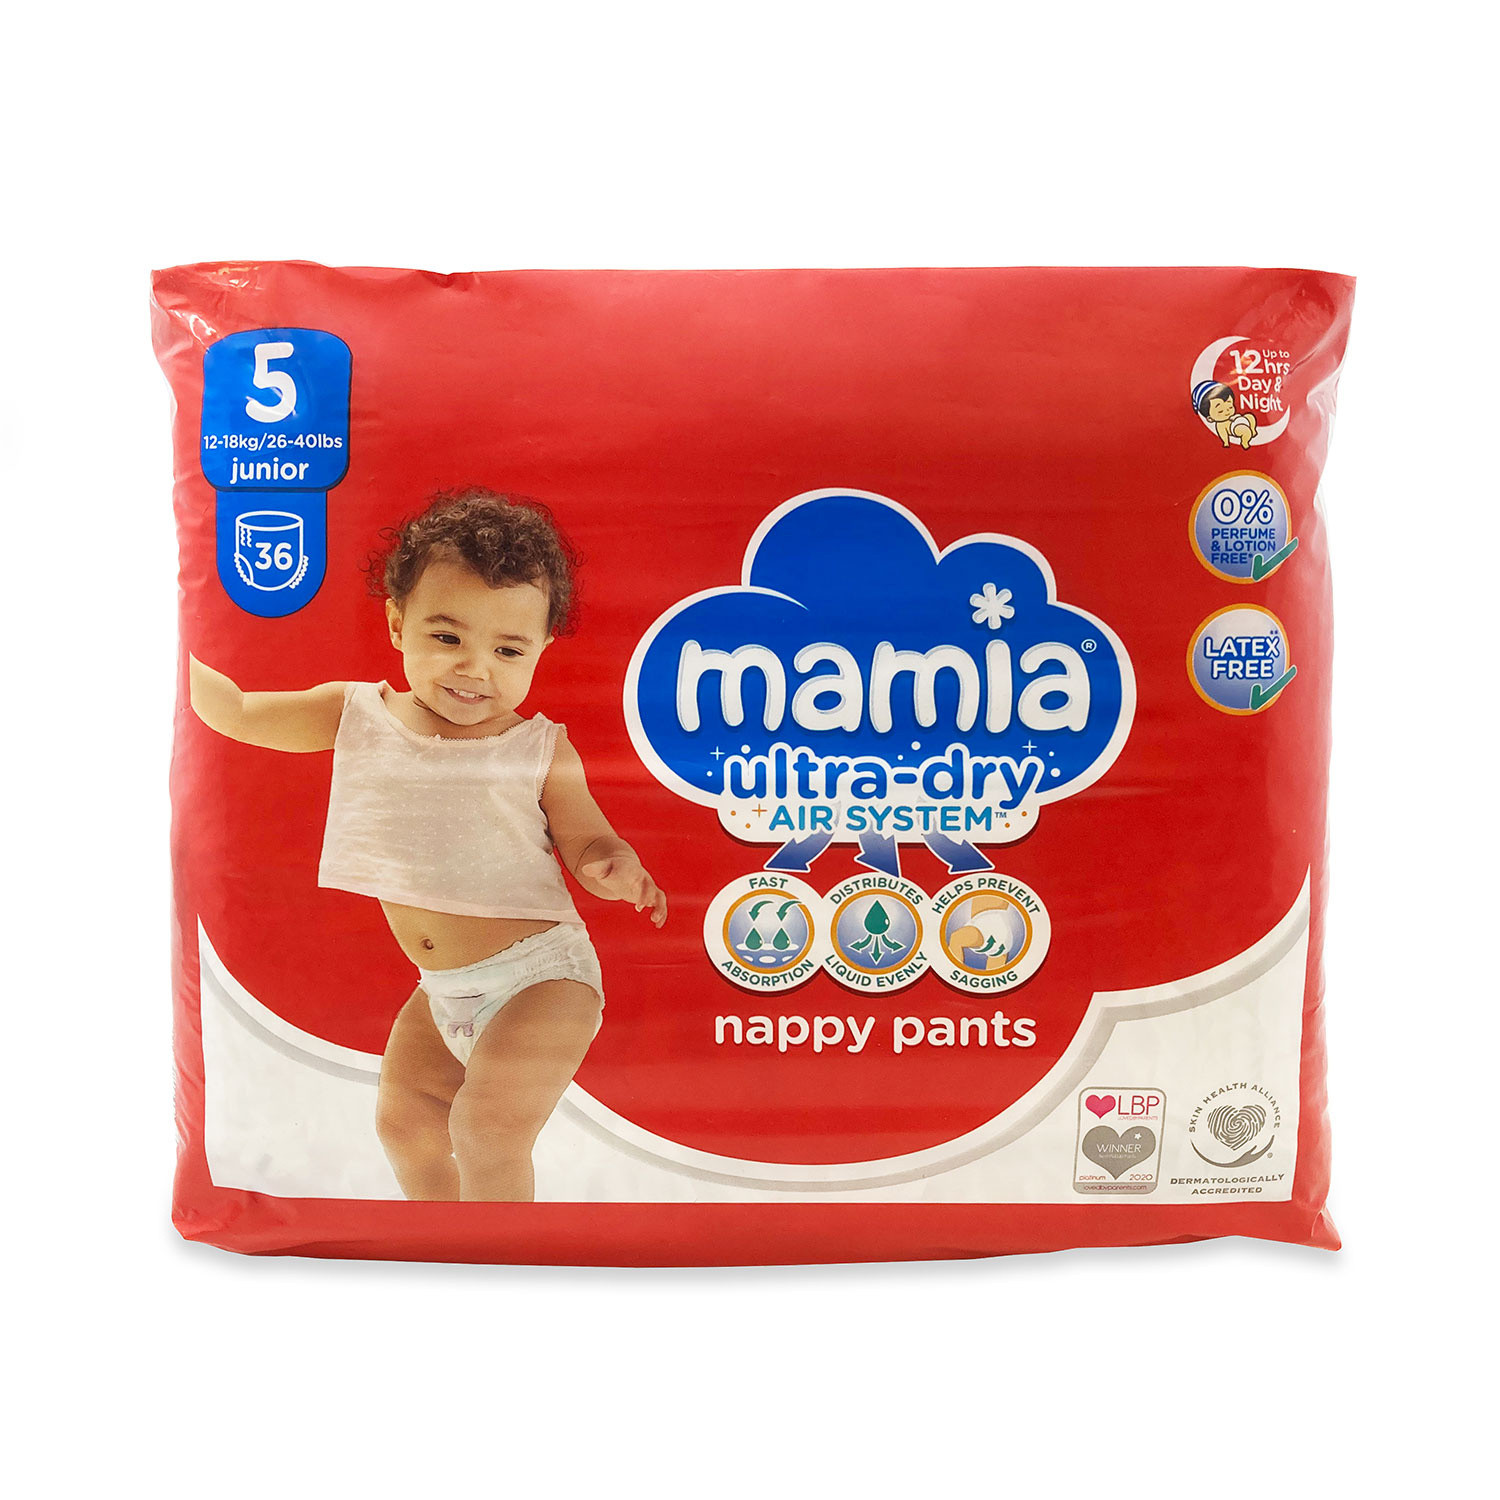 Mamia Nappy Pants Size 5 36 Pack